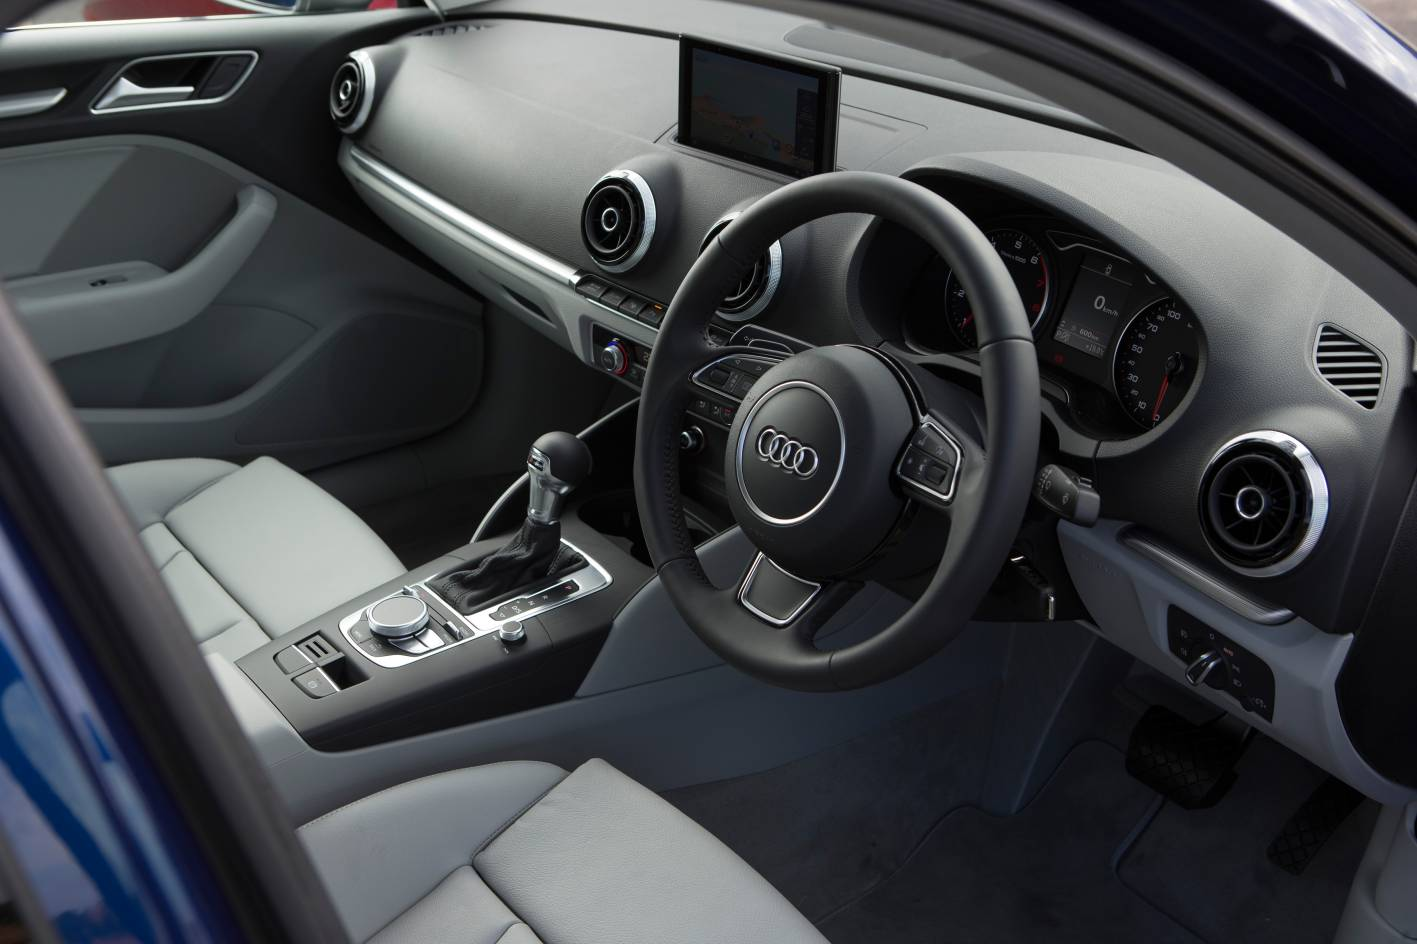 2014 Audi A3 Sedan Tfsi Ambition Interior Forcegt Com